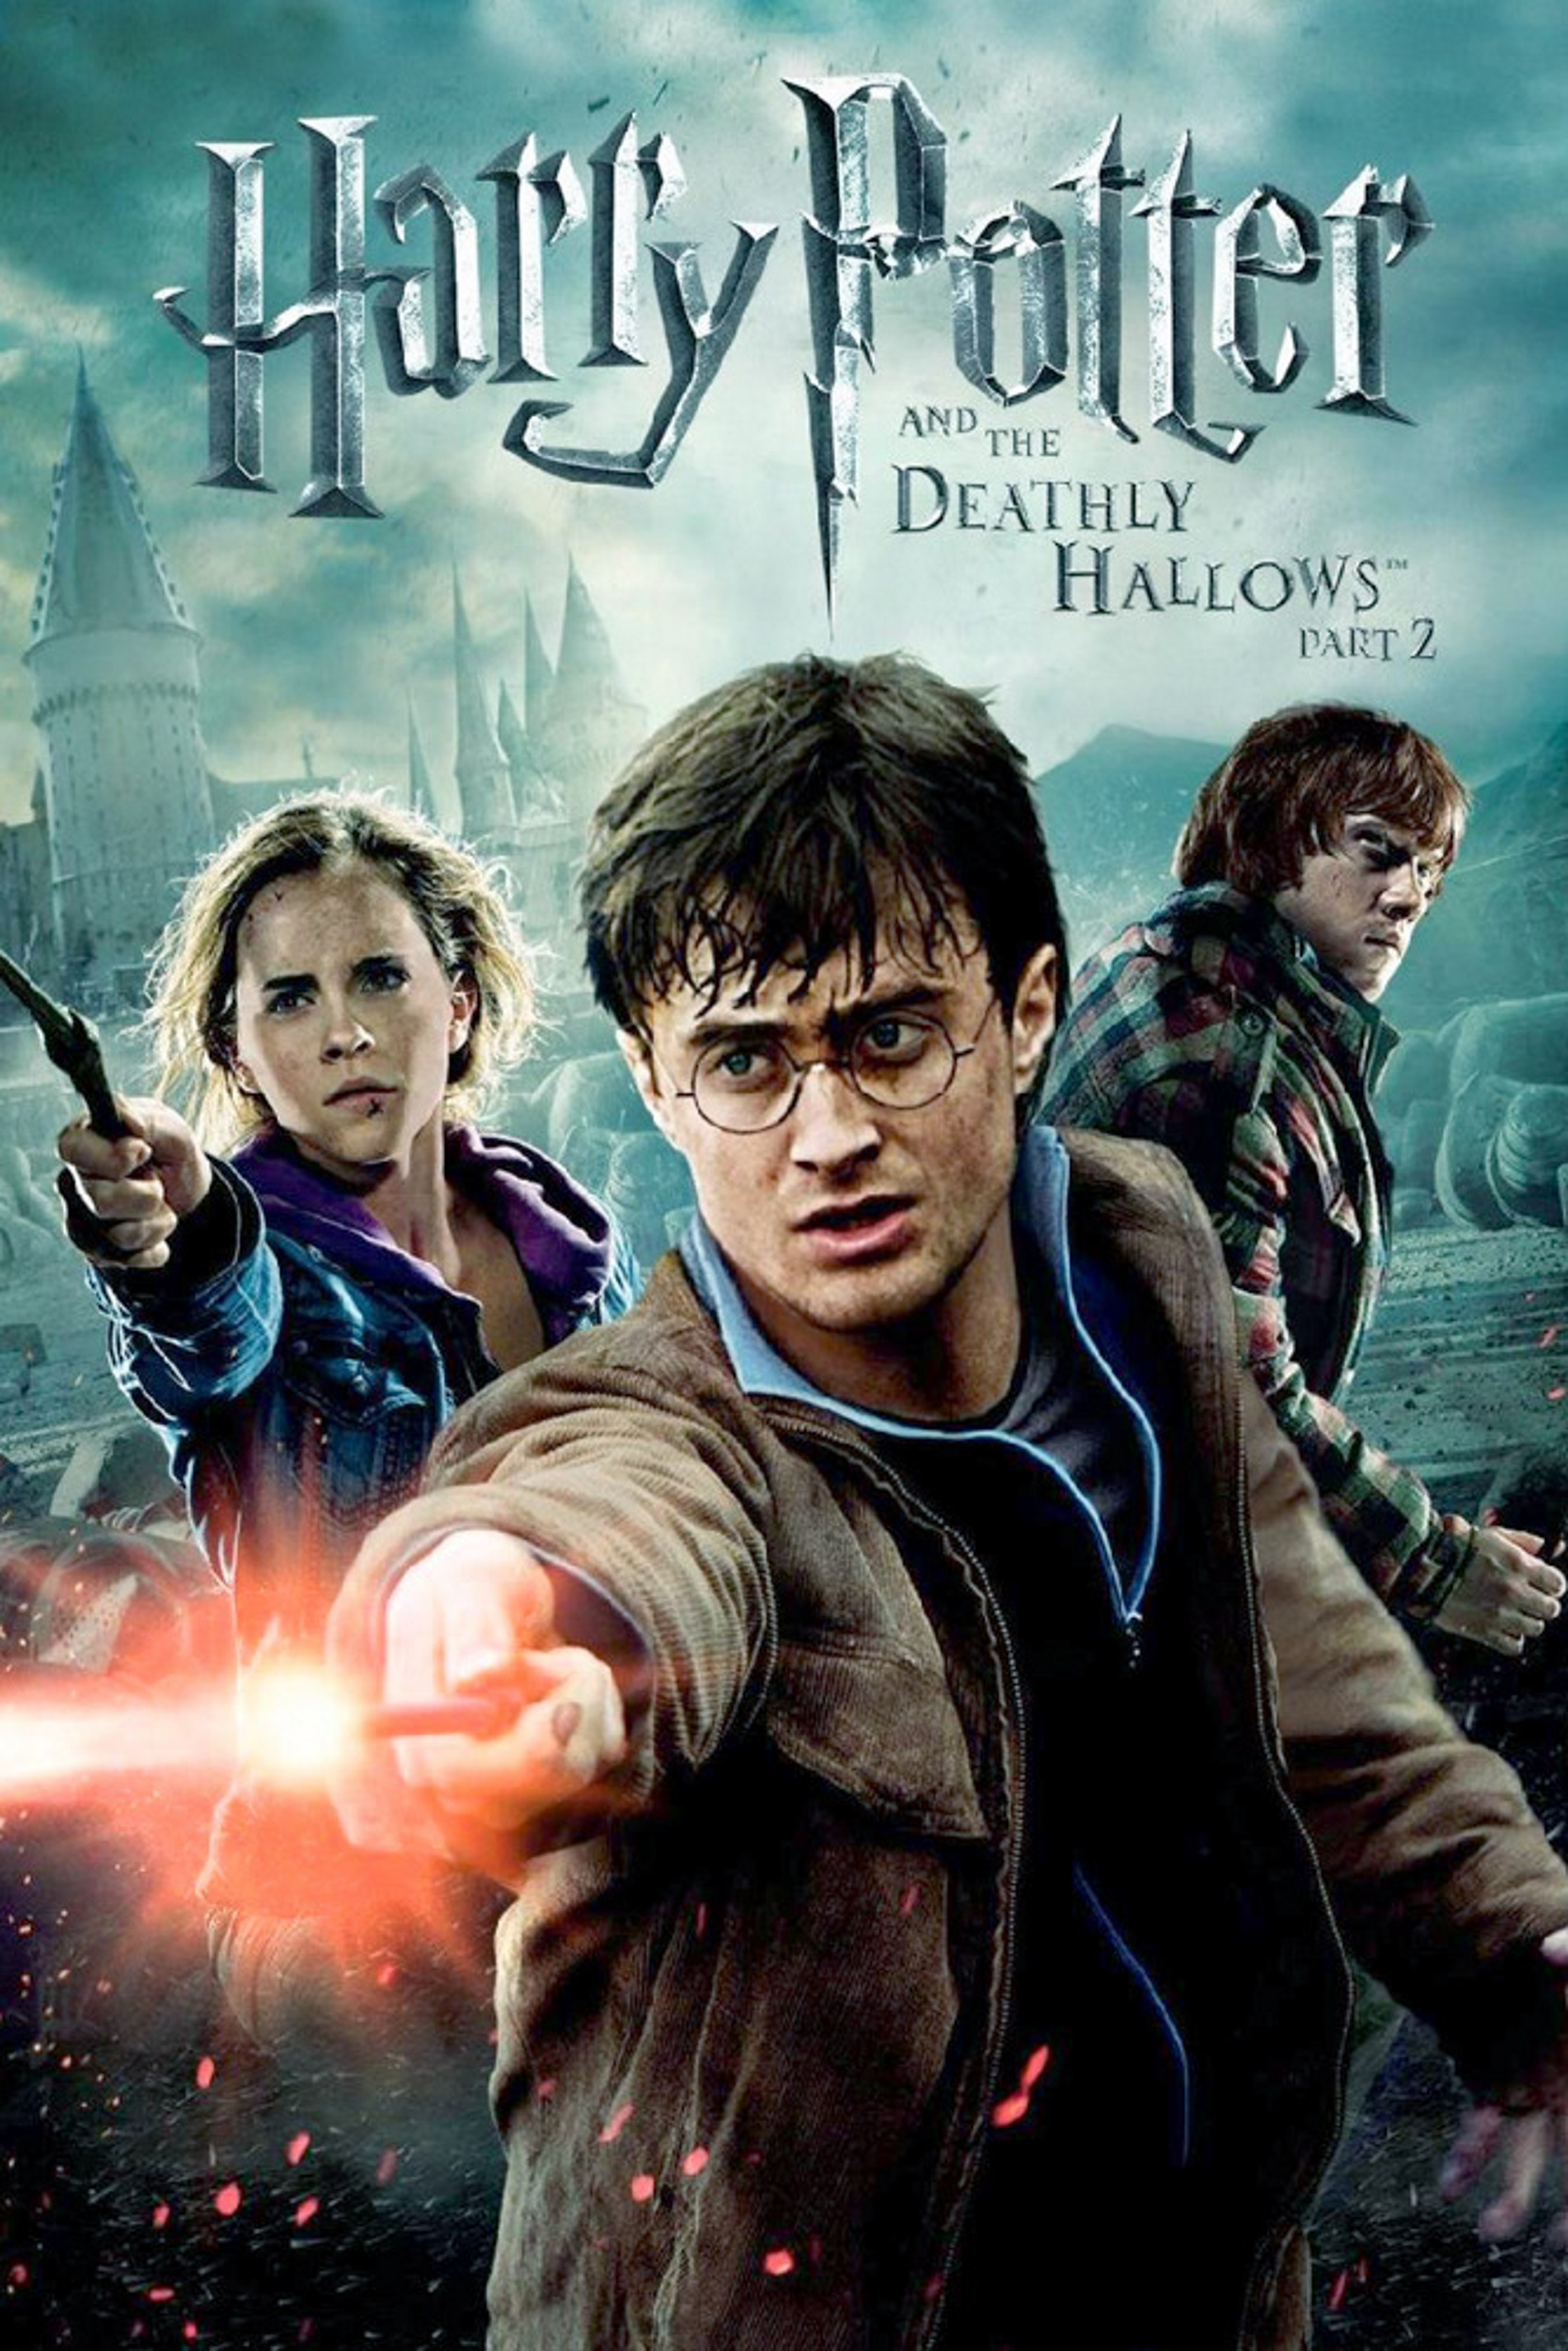 harry potter and the deathly hallows part 2 2011 imdb